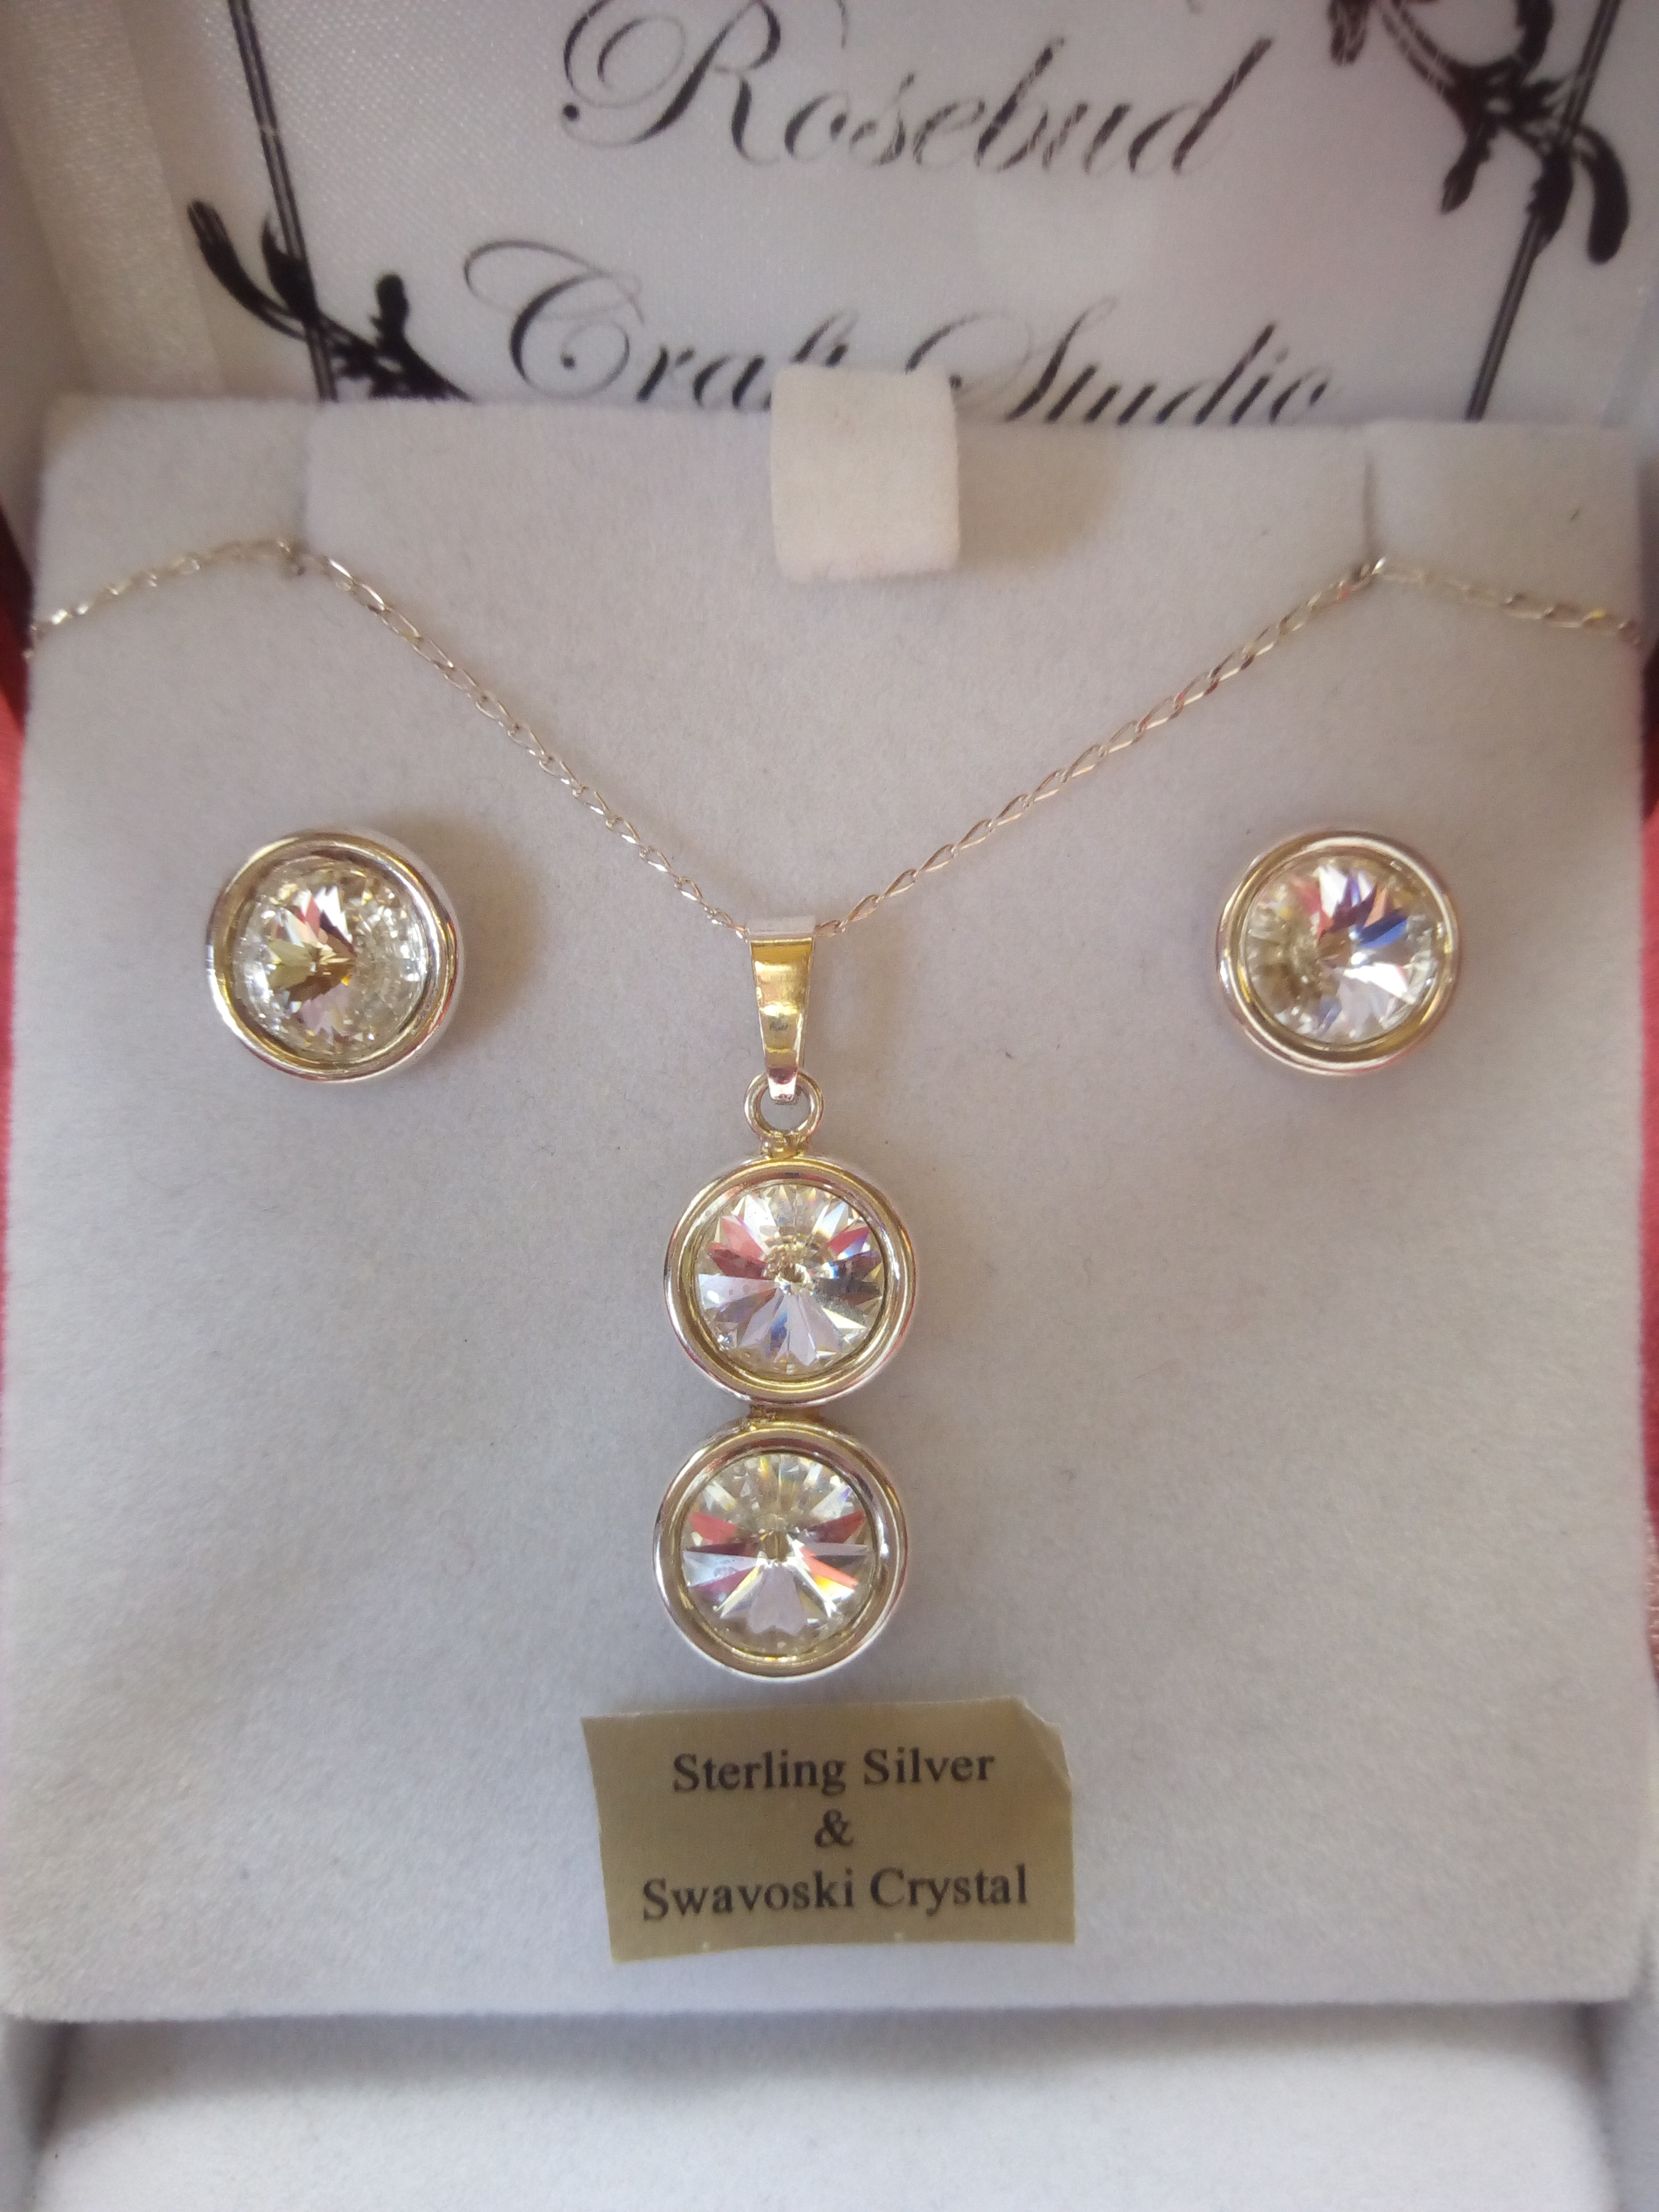 Crystal pendant and earring set